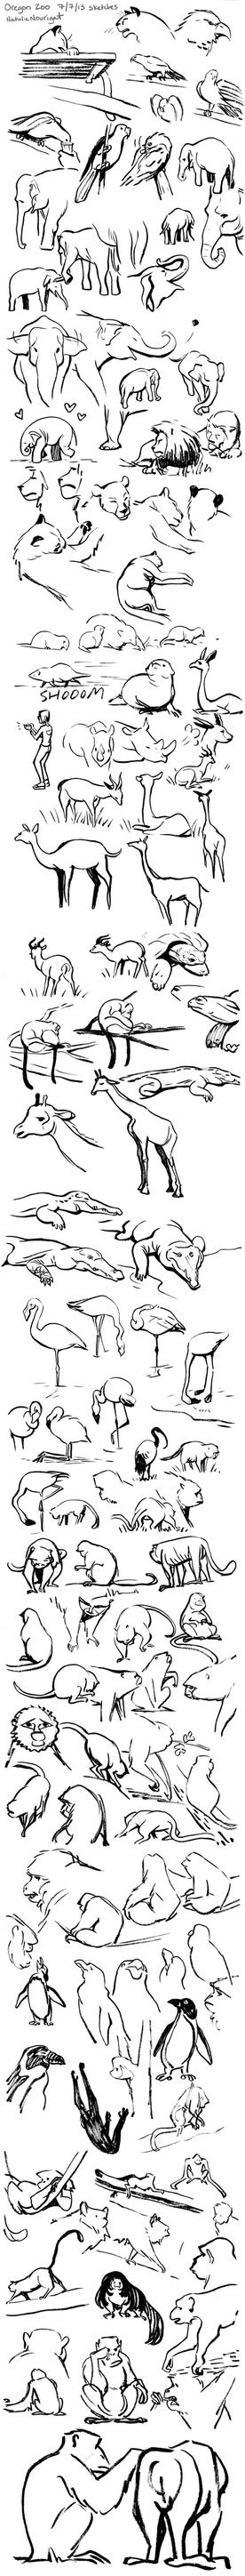 Oregon Zoo sketches 7.7.13 by Tallychyck